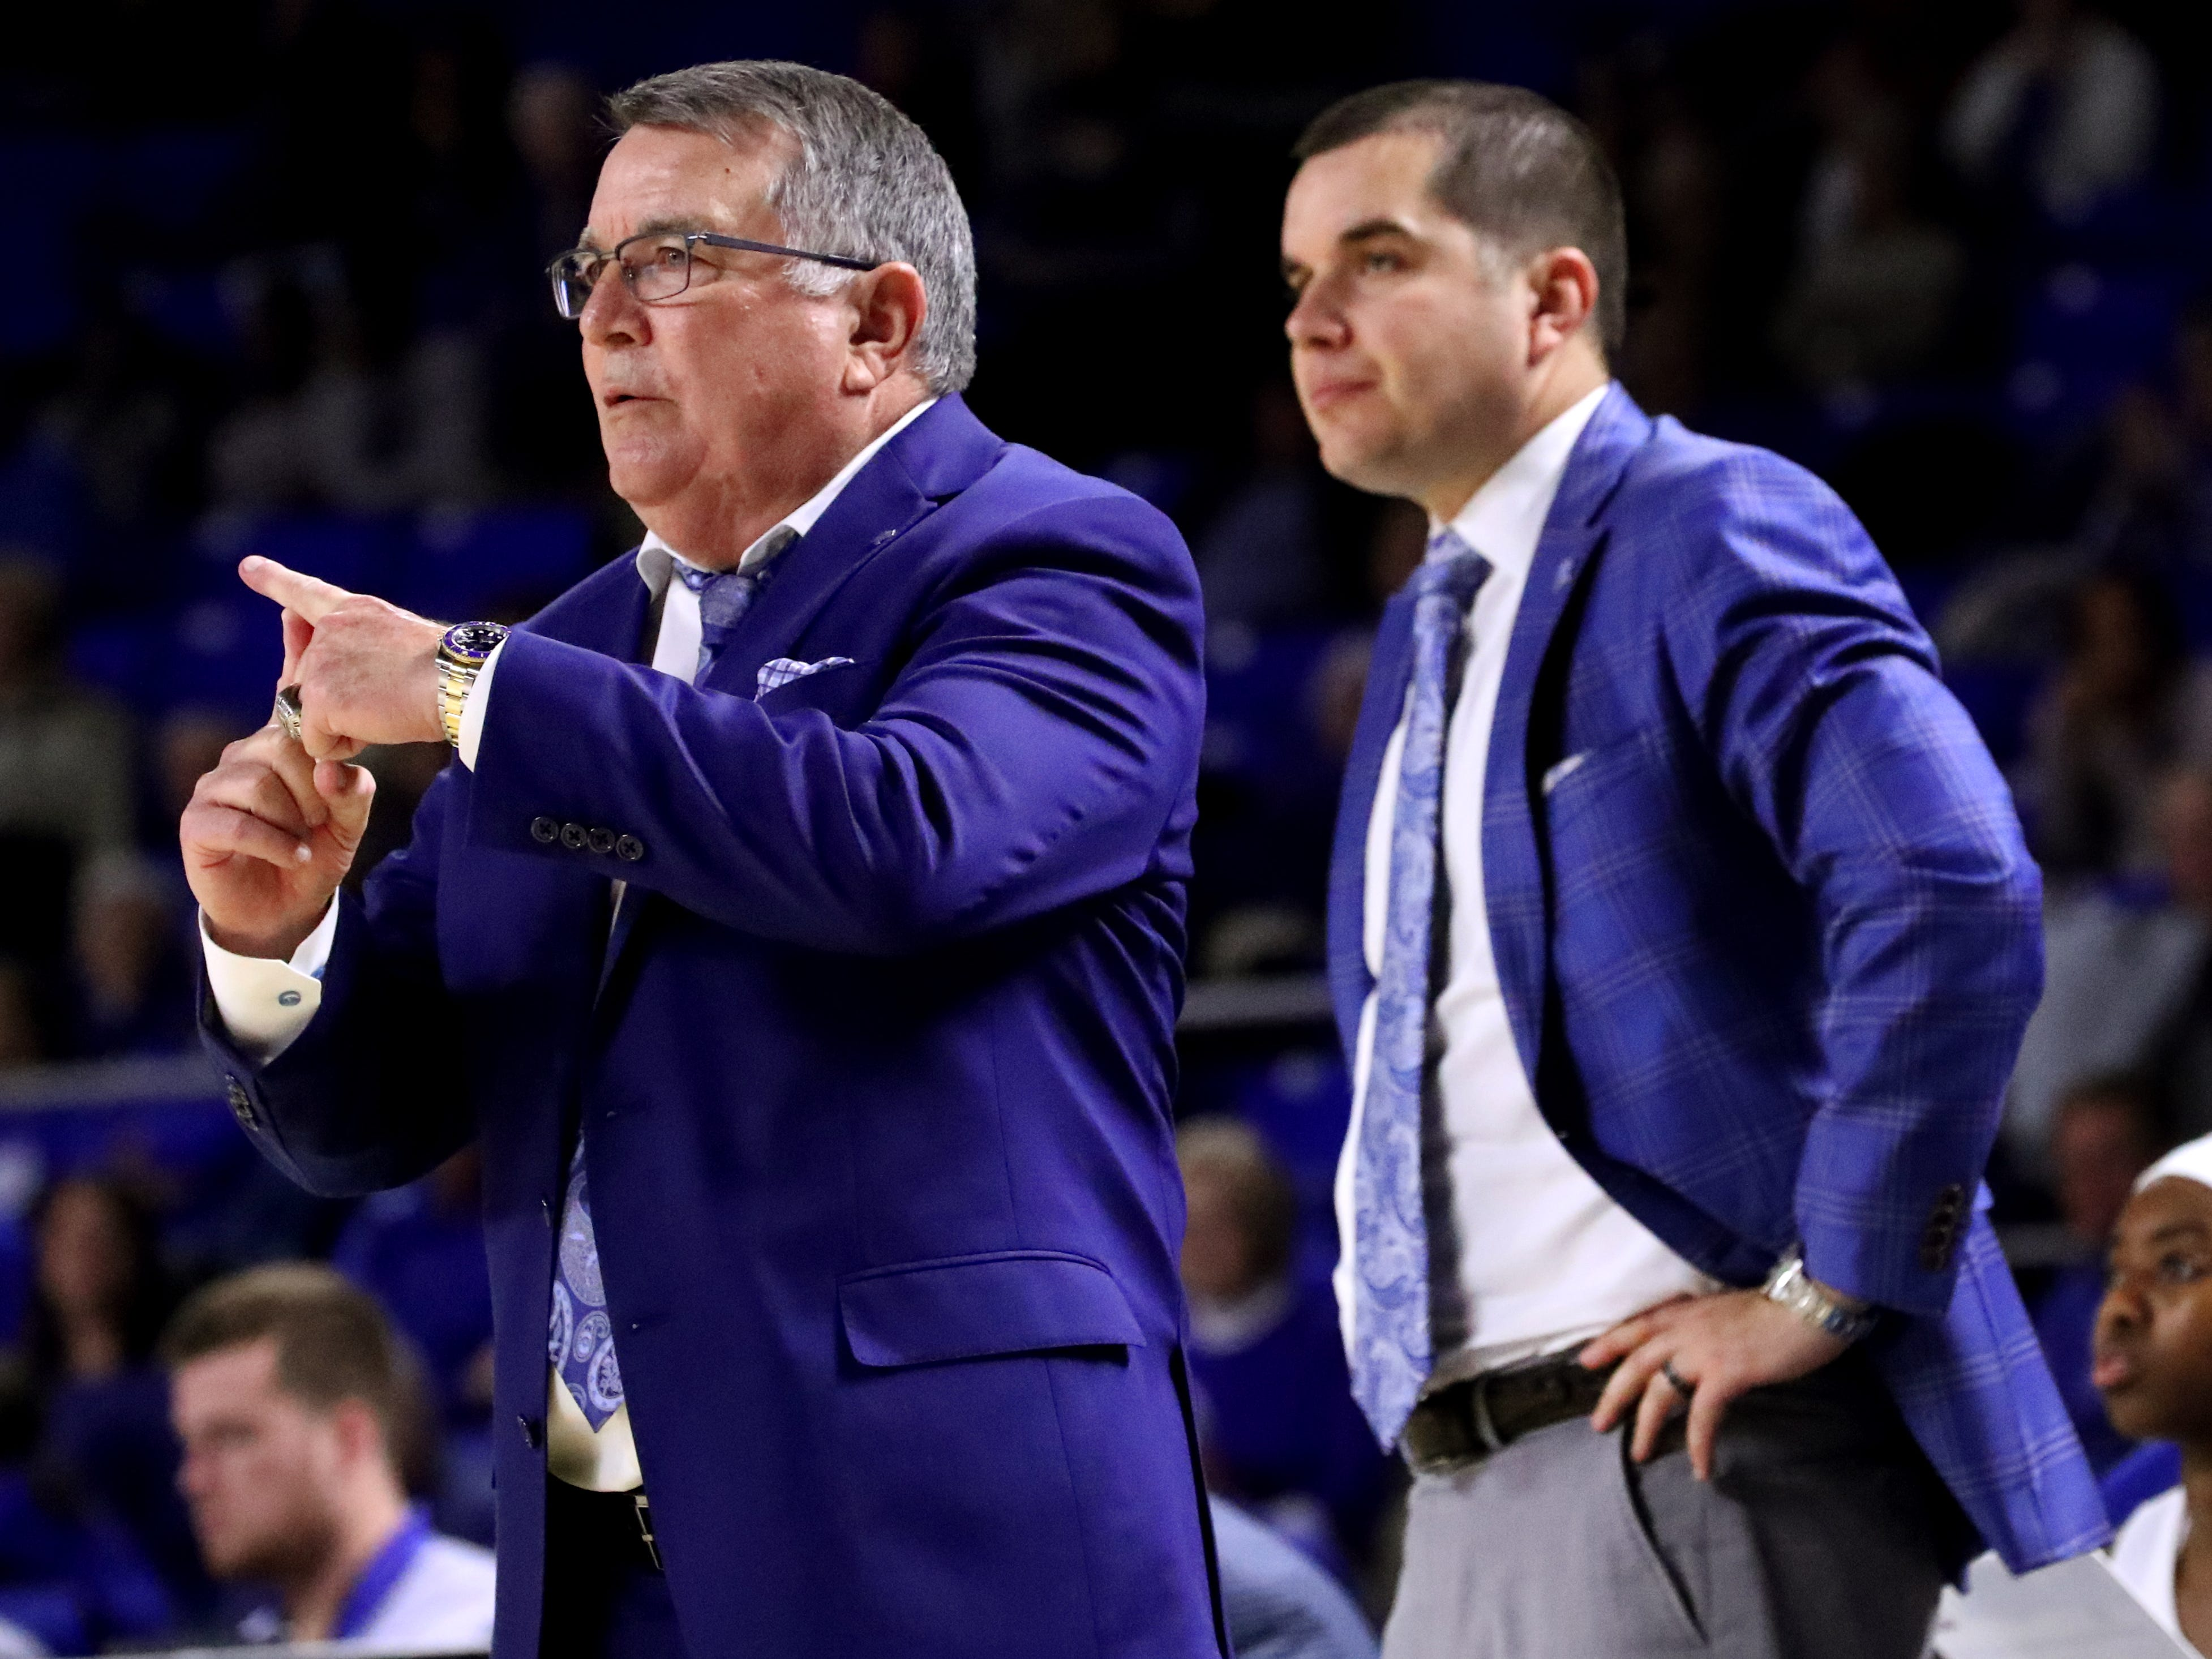 MTSU's head basketball coach Rick Insell, left coaches as his son and assistant MTSU basketball coach Matt Insell stands up in the background during the game against Vanderbilt during MTSU women's home opening game at MTSU on Friday, Nov. 8, 2018.